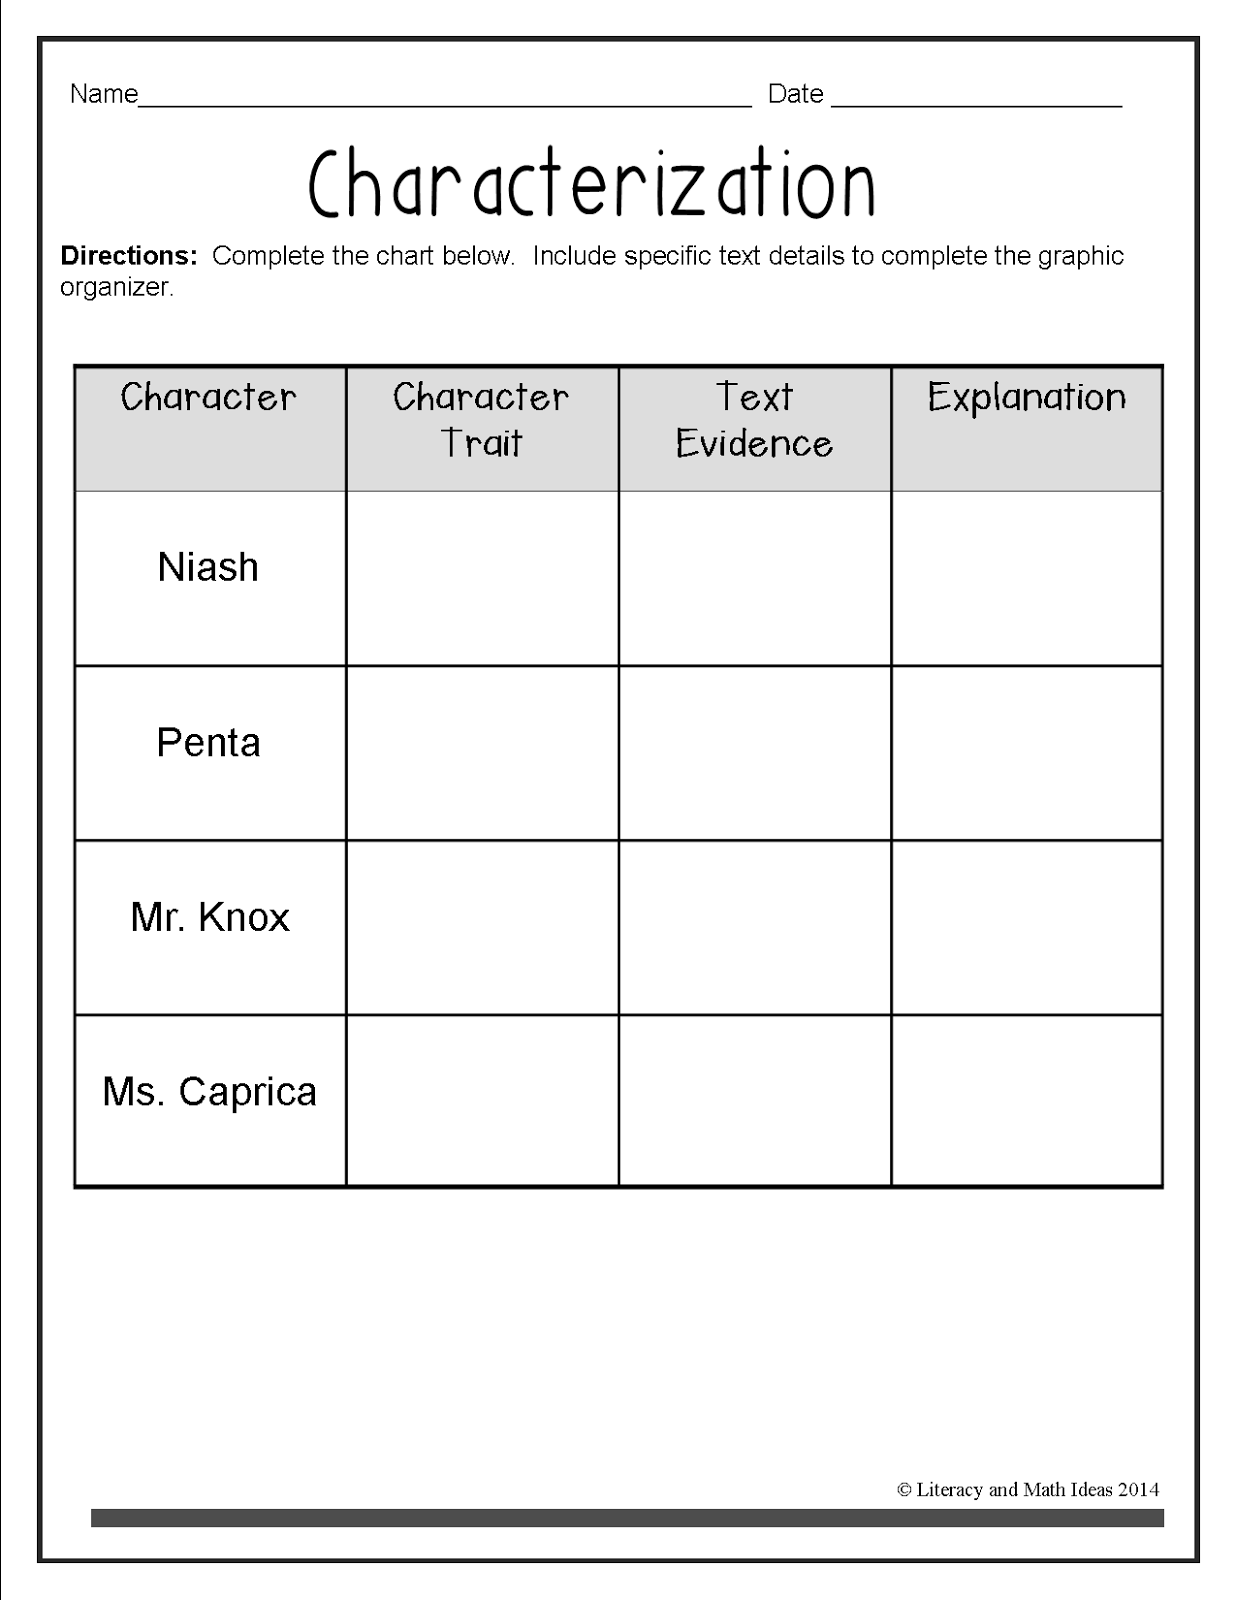 worksheet Reading Comprehension Worksheets For High School character worksheets for high school story science reading comprehension free worksheets